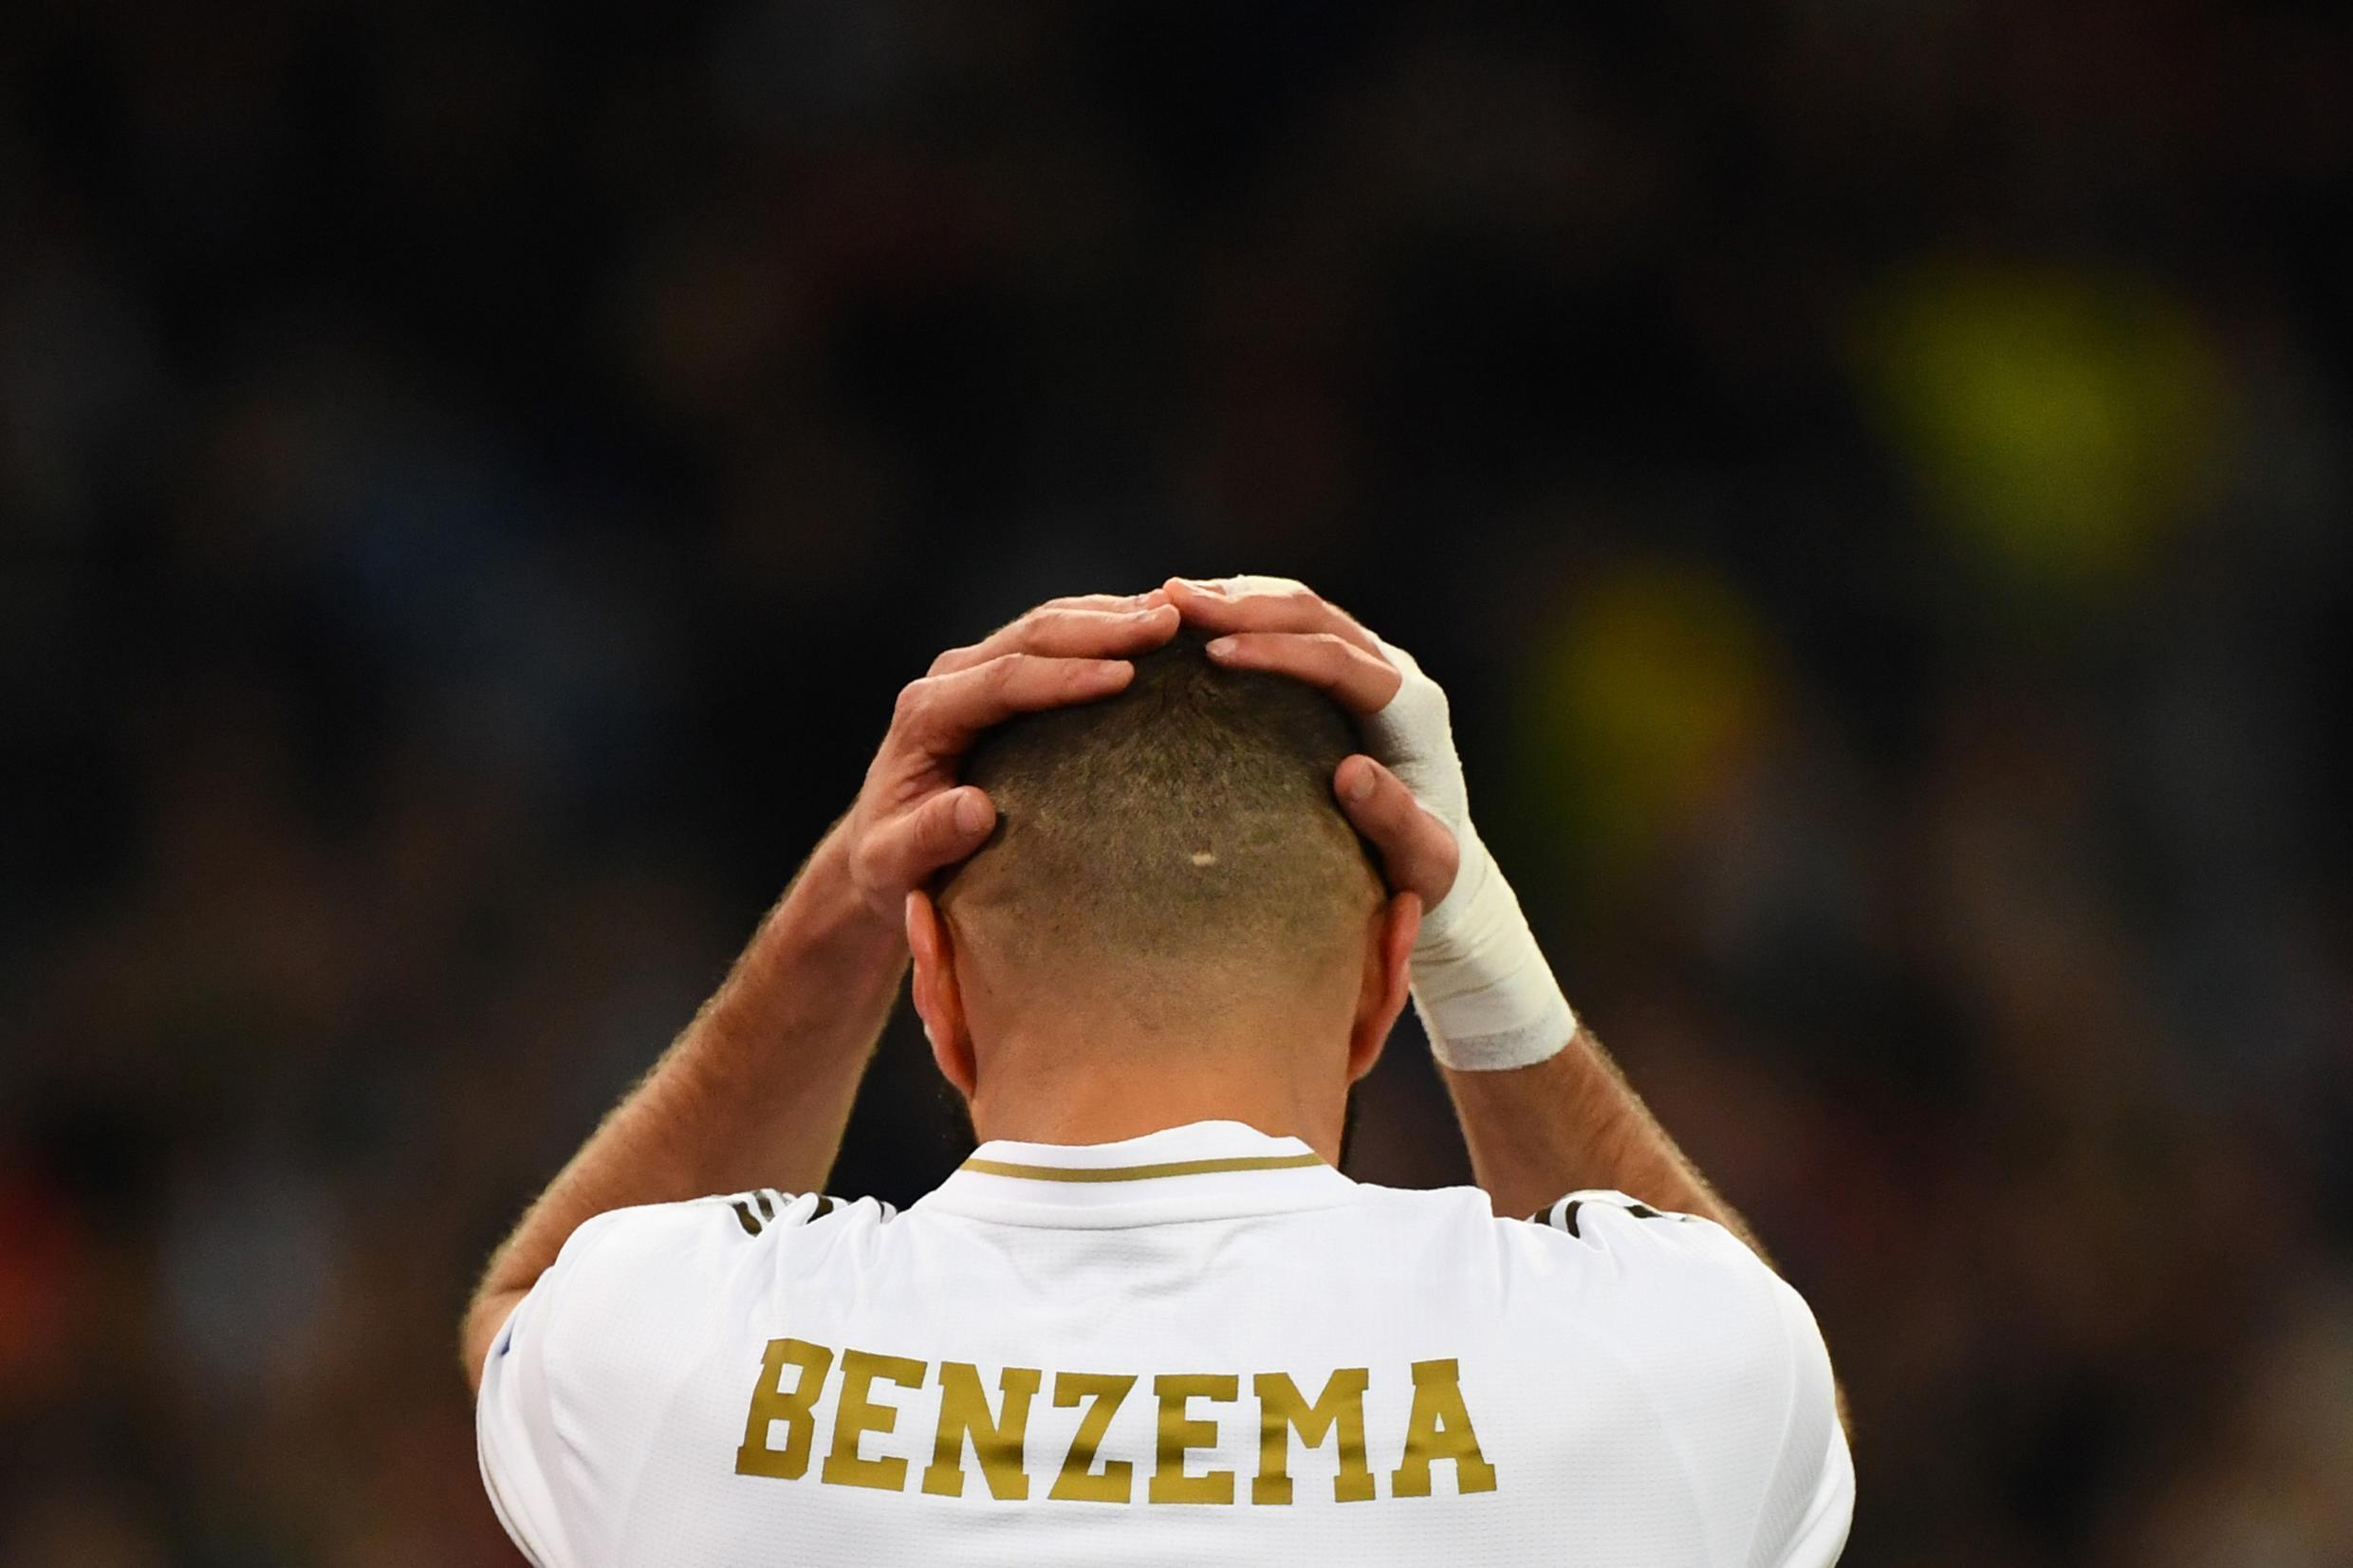 Karim Benzema, avançado francês do Real Madrid.